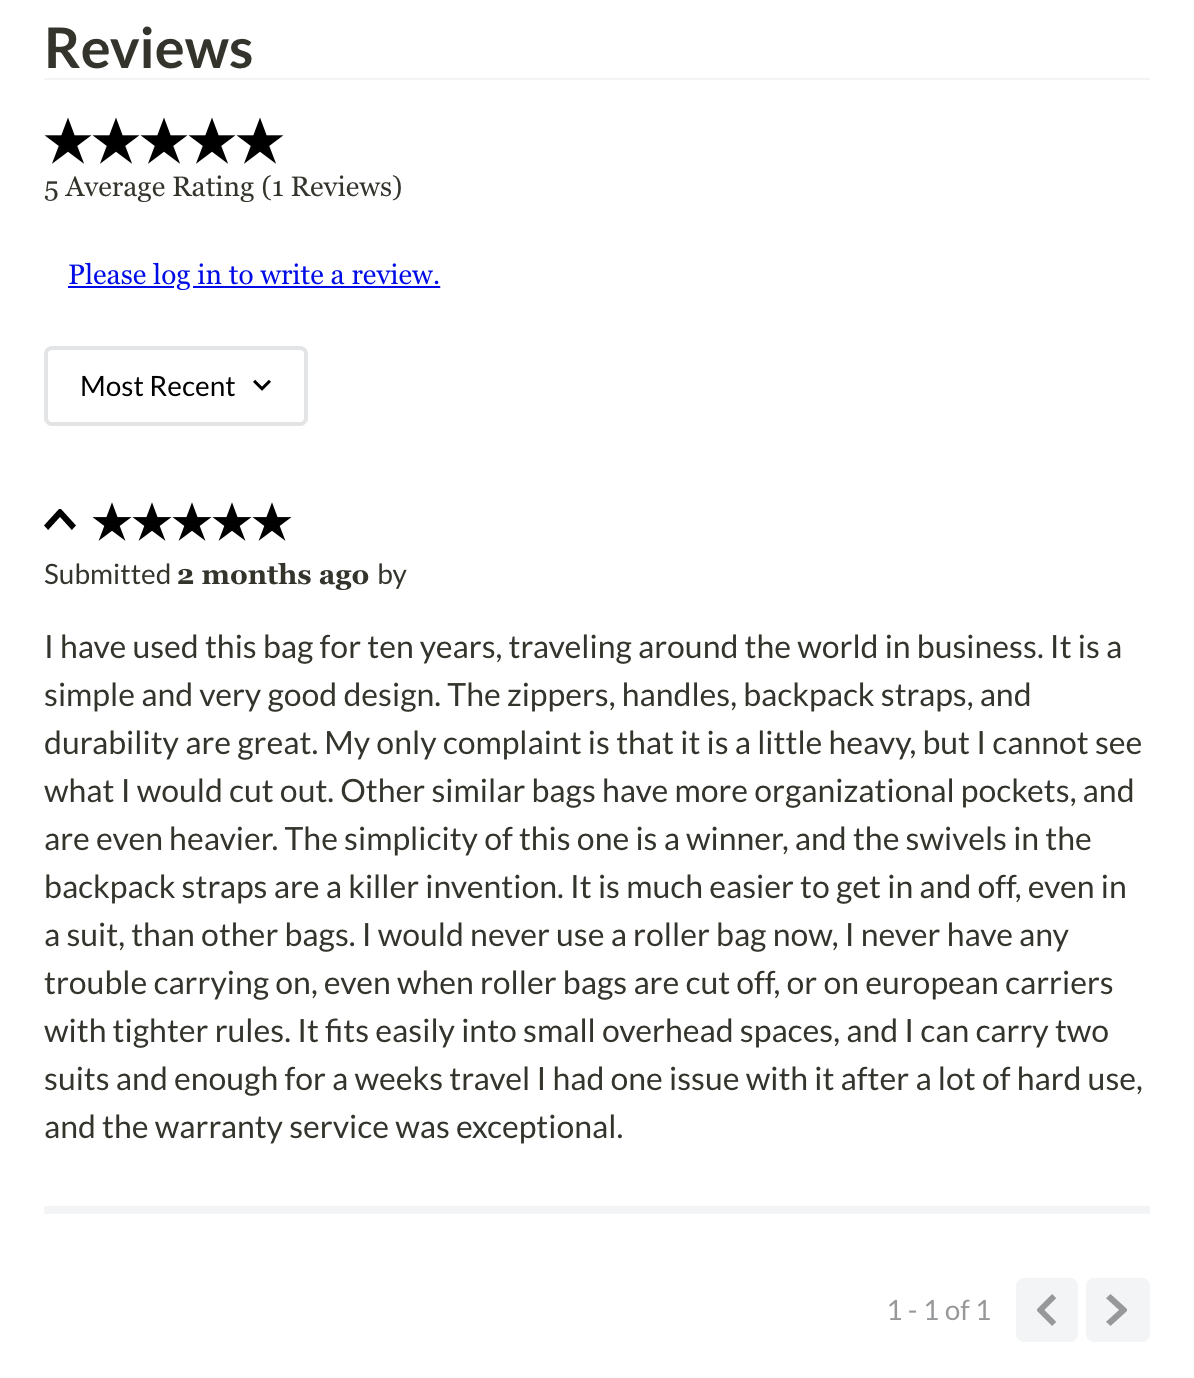 reviews-and-ratings-app